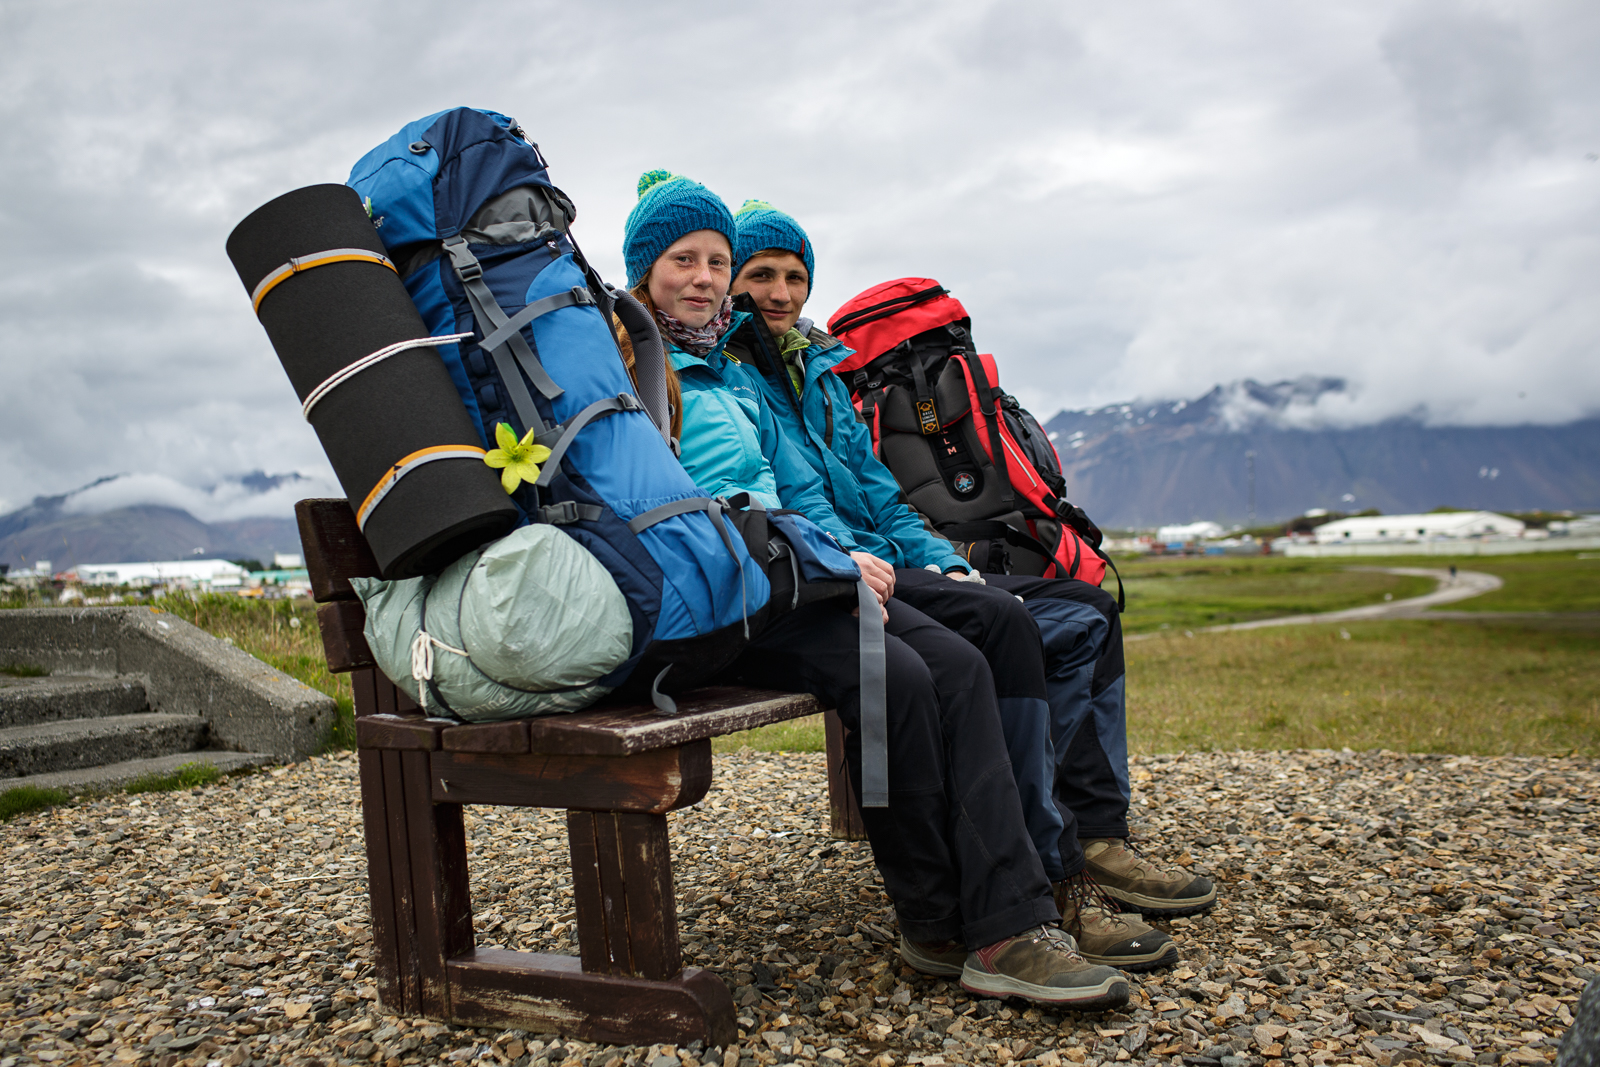 Two Polish backpackers hitch hiking their way across Iceland take a break on a bench in Hofn in southeastern Iceland.